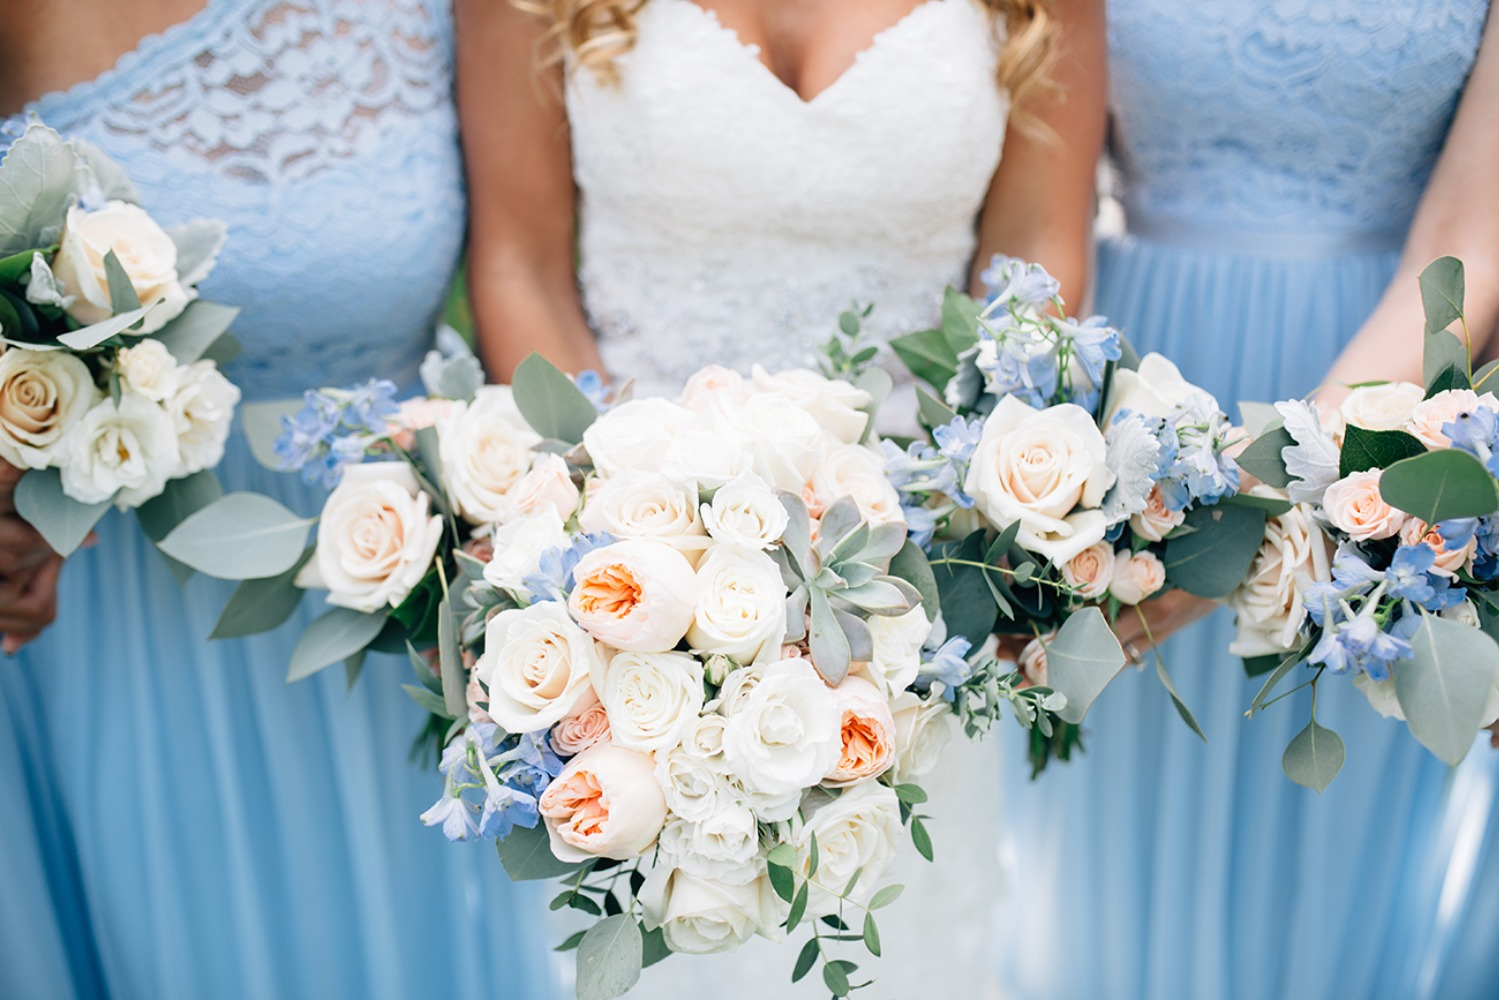 ice blue bridesmaids with blush and blue bouquets